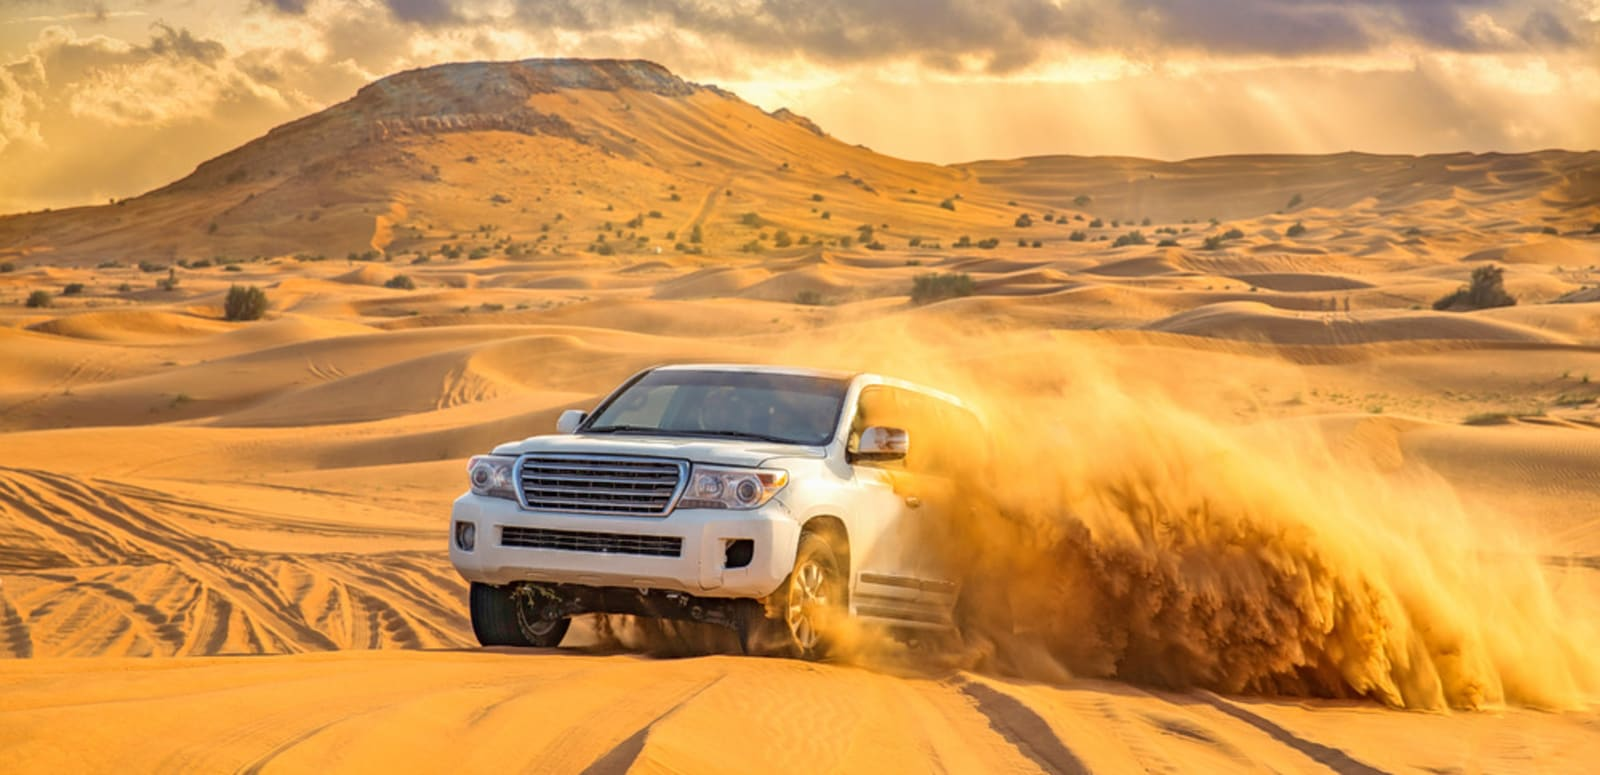 Hasil gambar untuk Dubai desert safari-The The perfect spot for vacations.